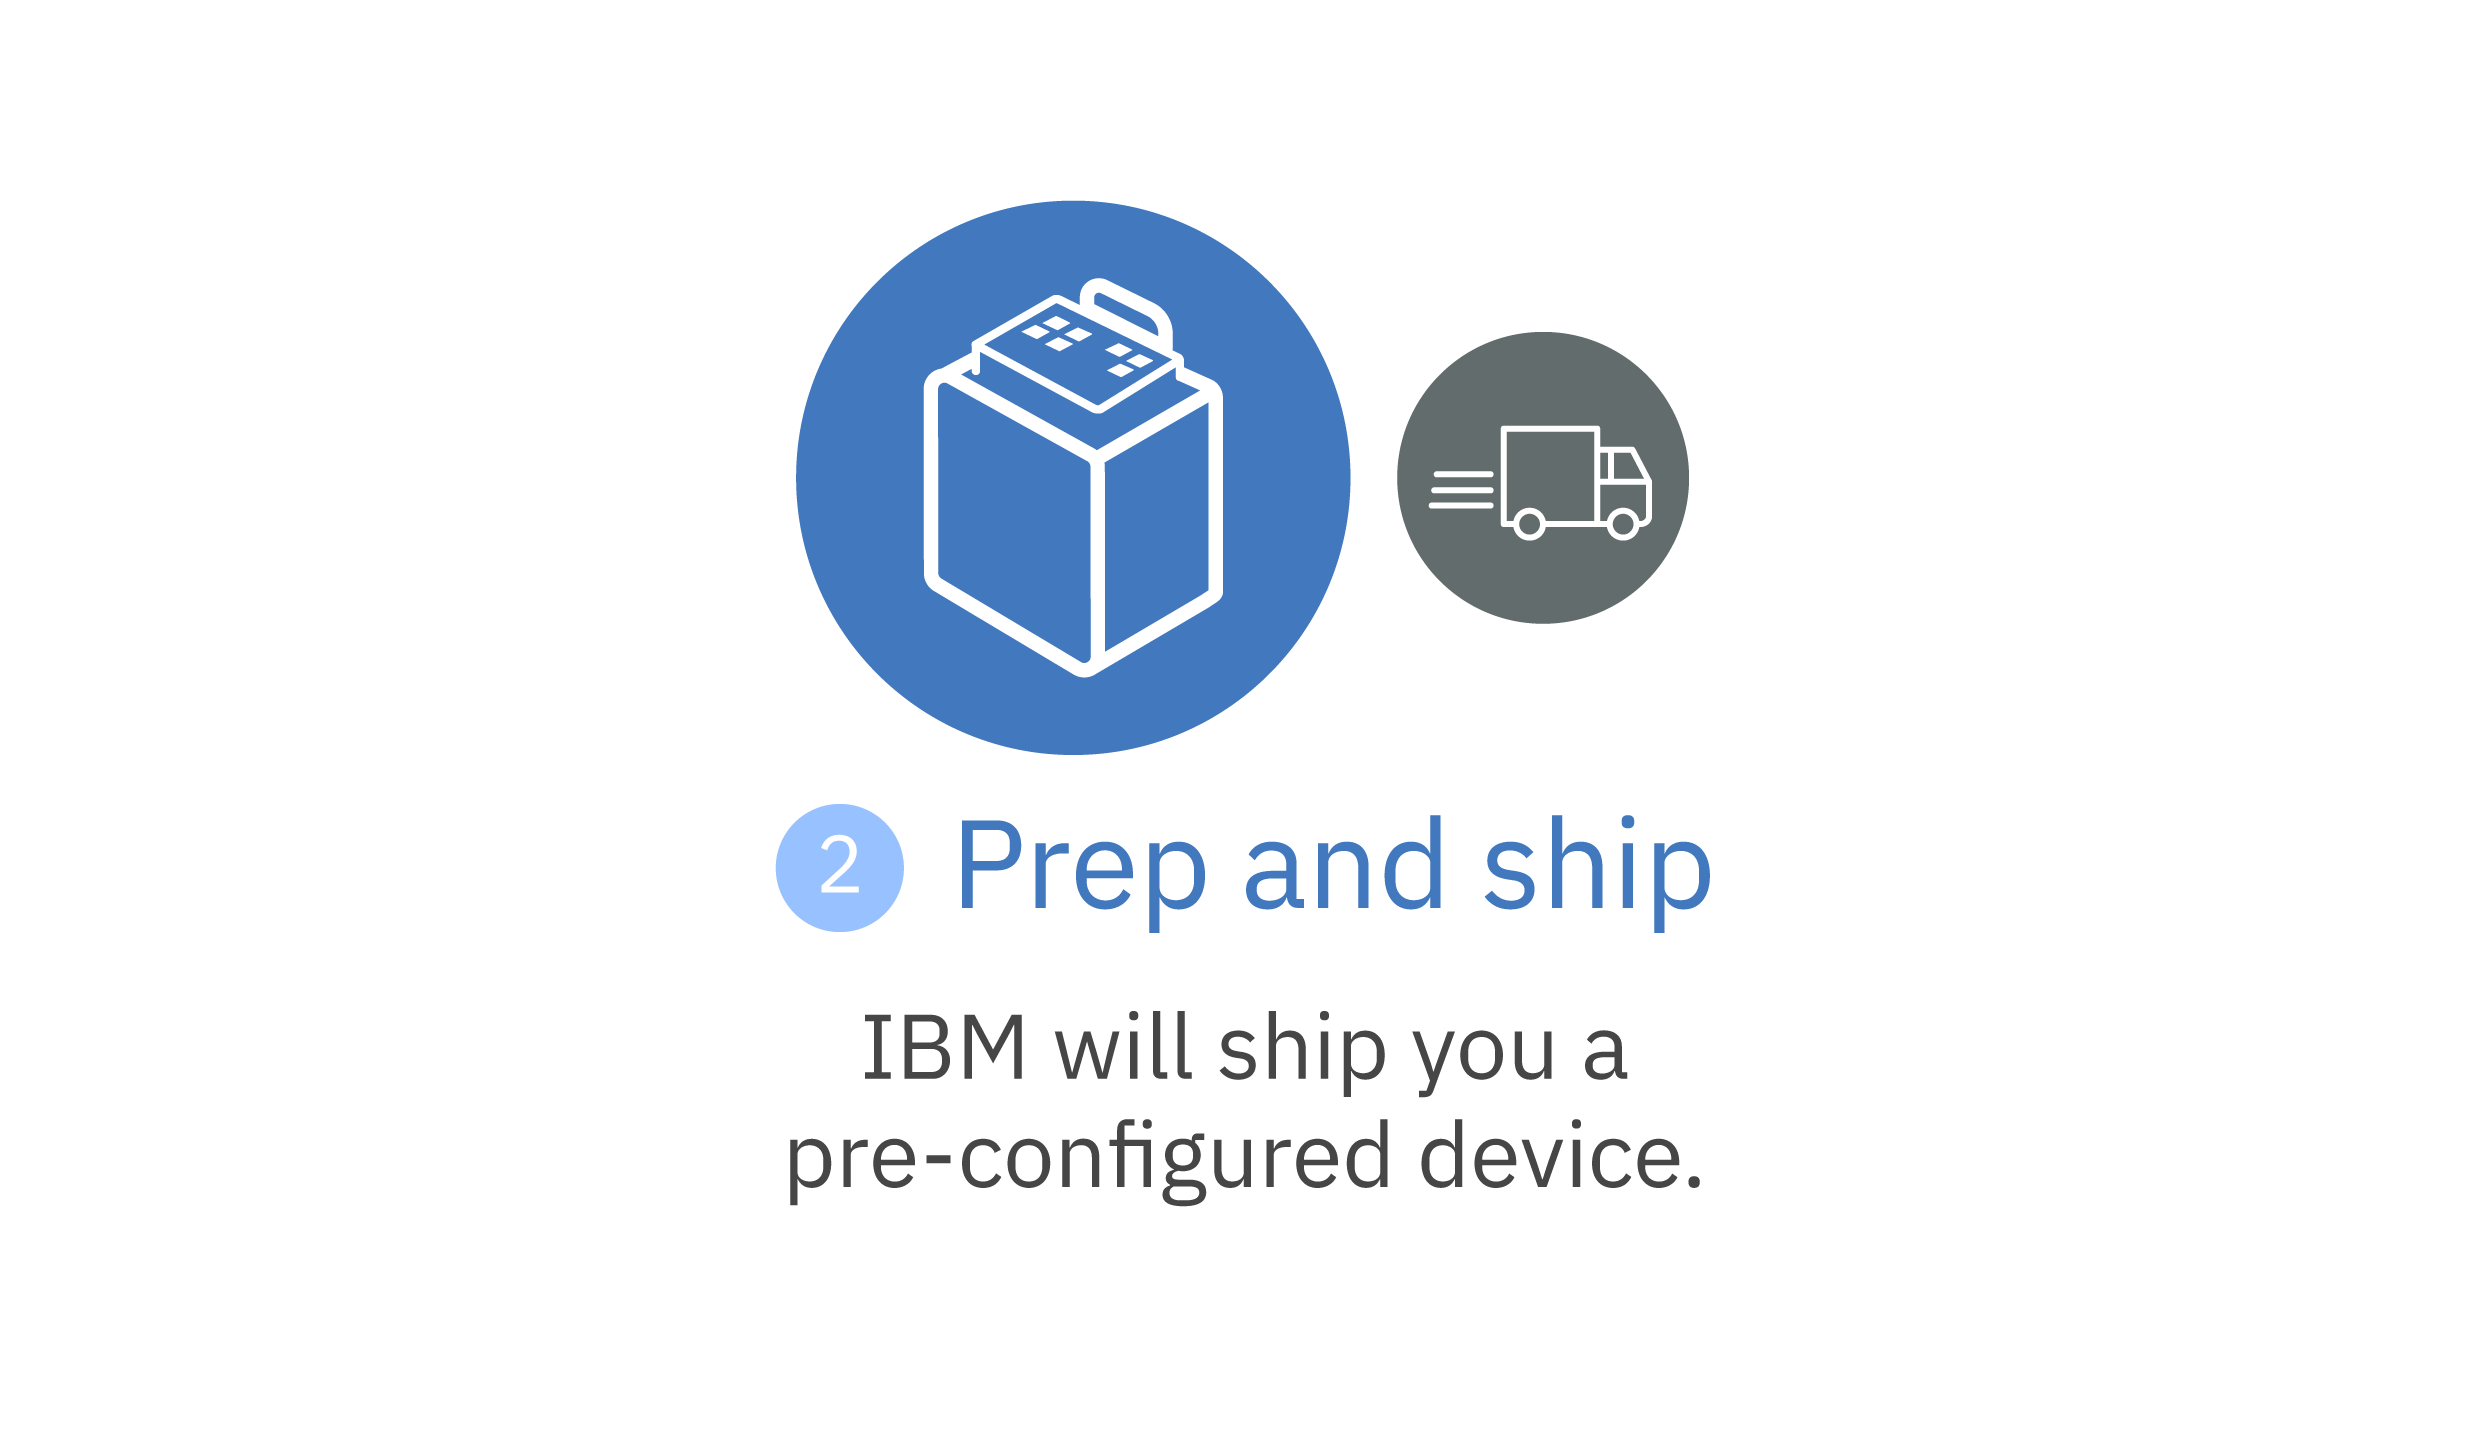 Step 2: Prep and ship